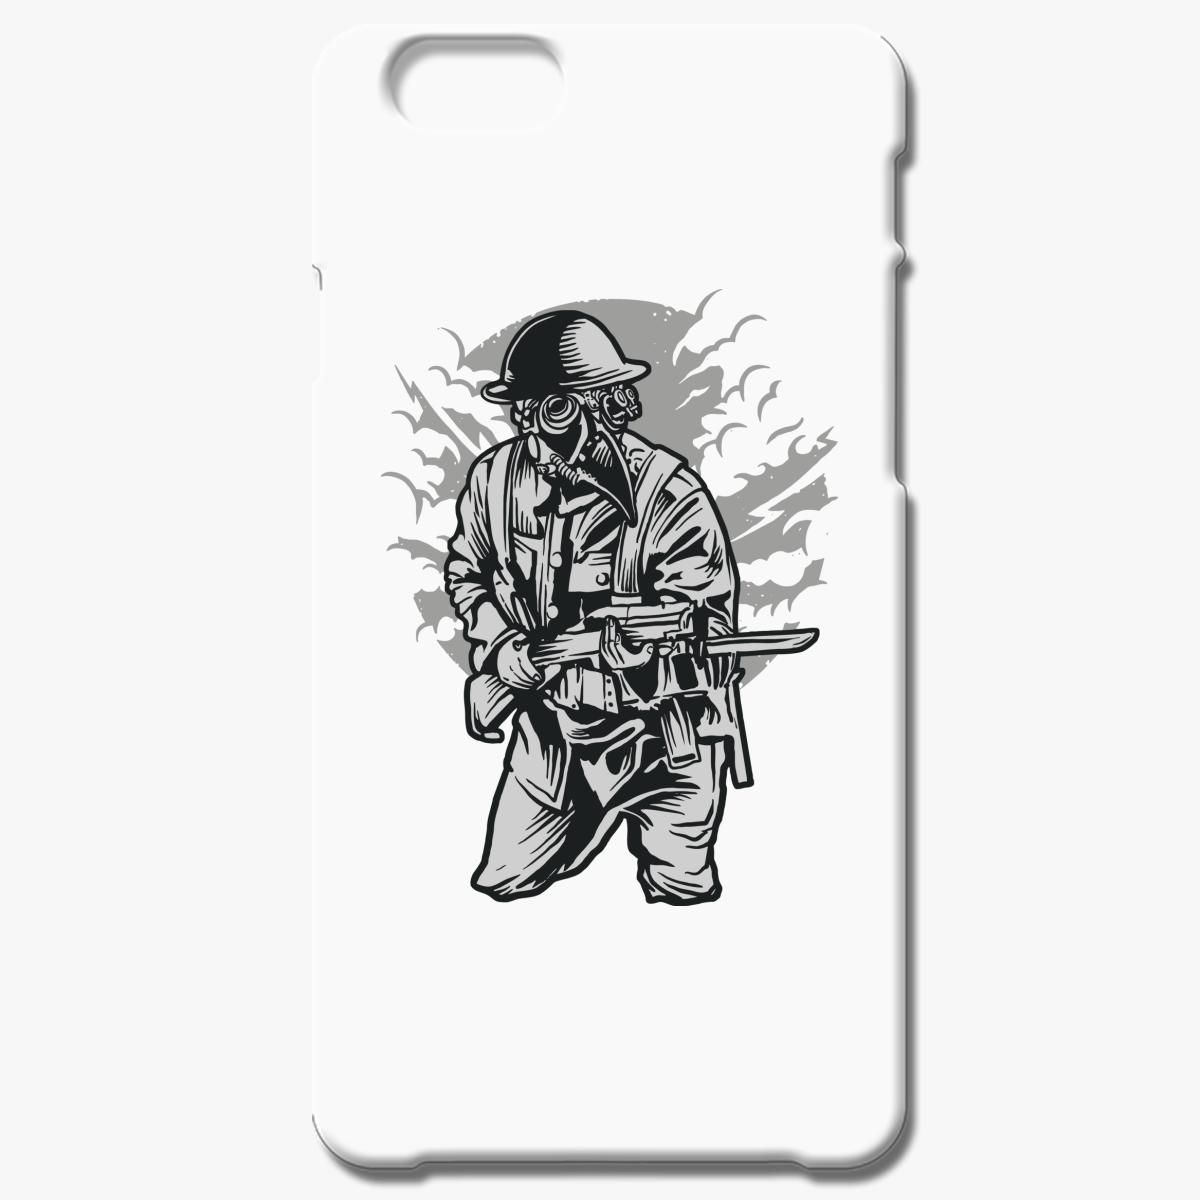 Steampunk Style Iphone 6 6s Case